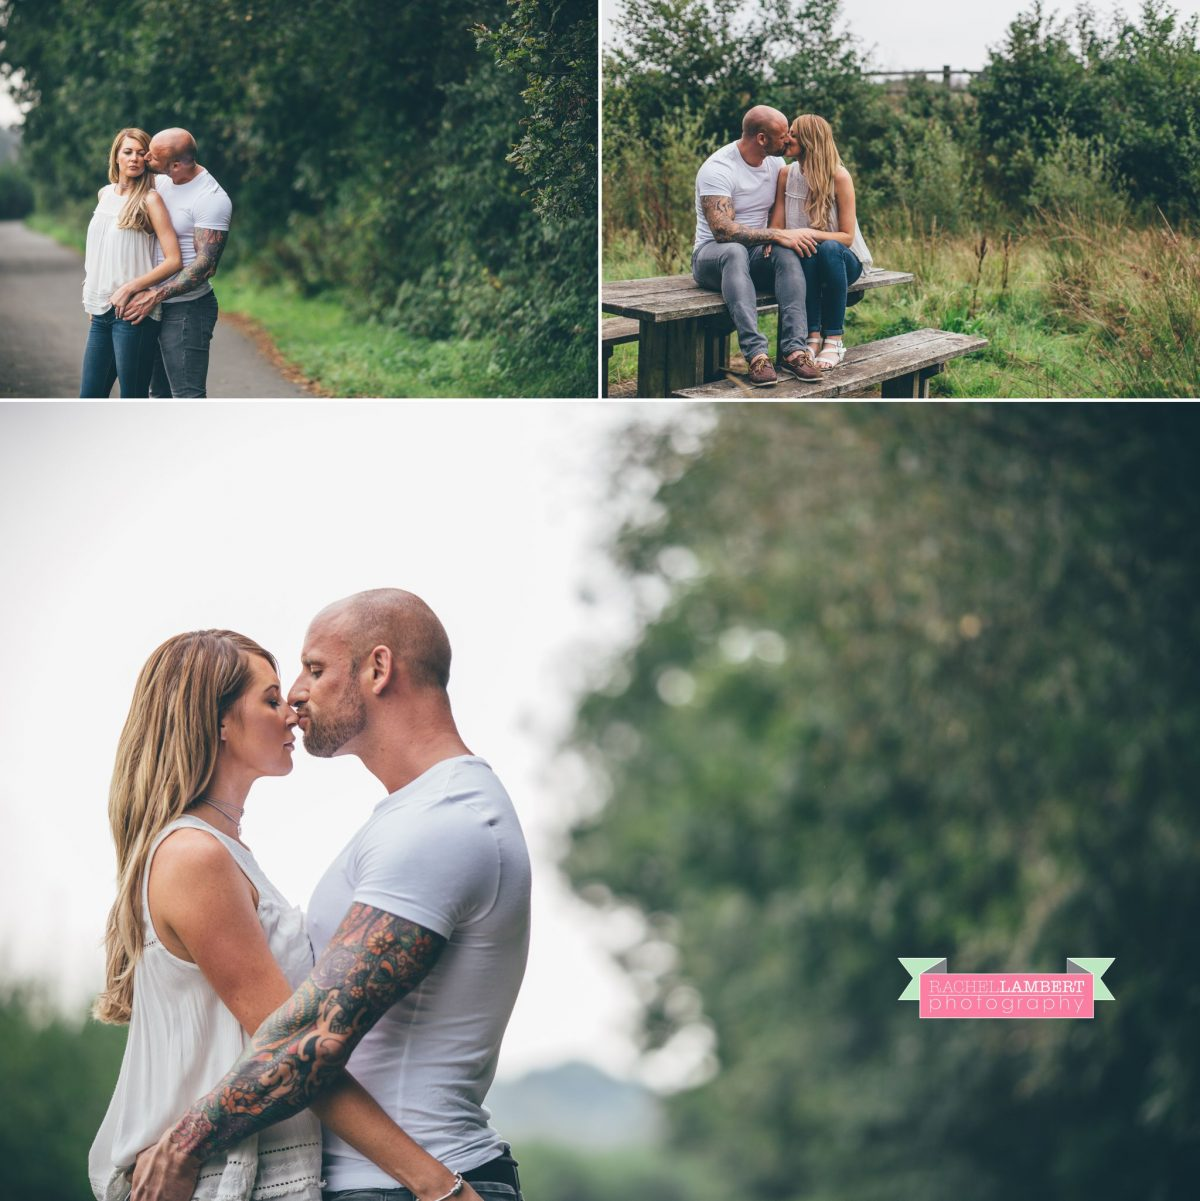 welsh_wedding_photographer_rachel_lambert_photography_cardiff_engagement_shoot_rhiannon_gavin_ 16